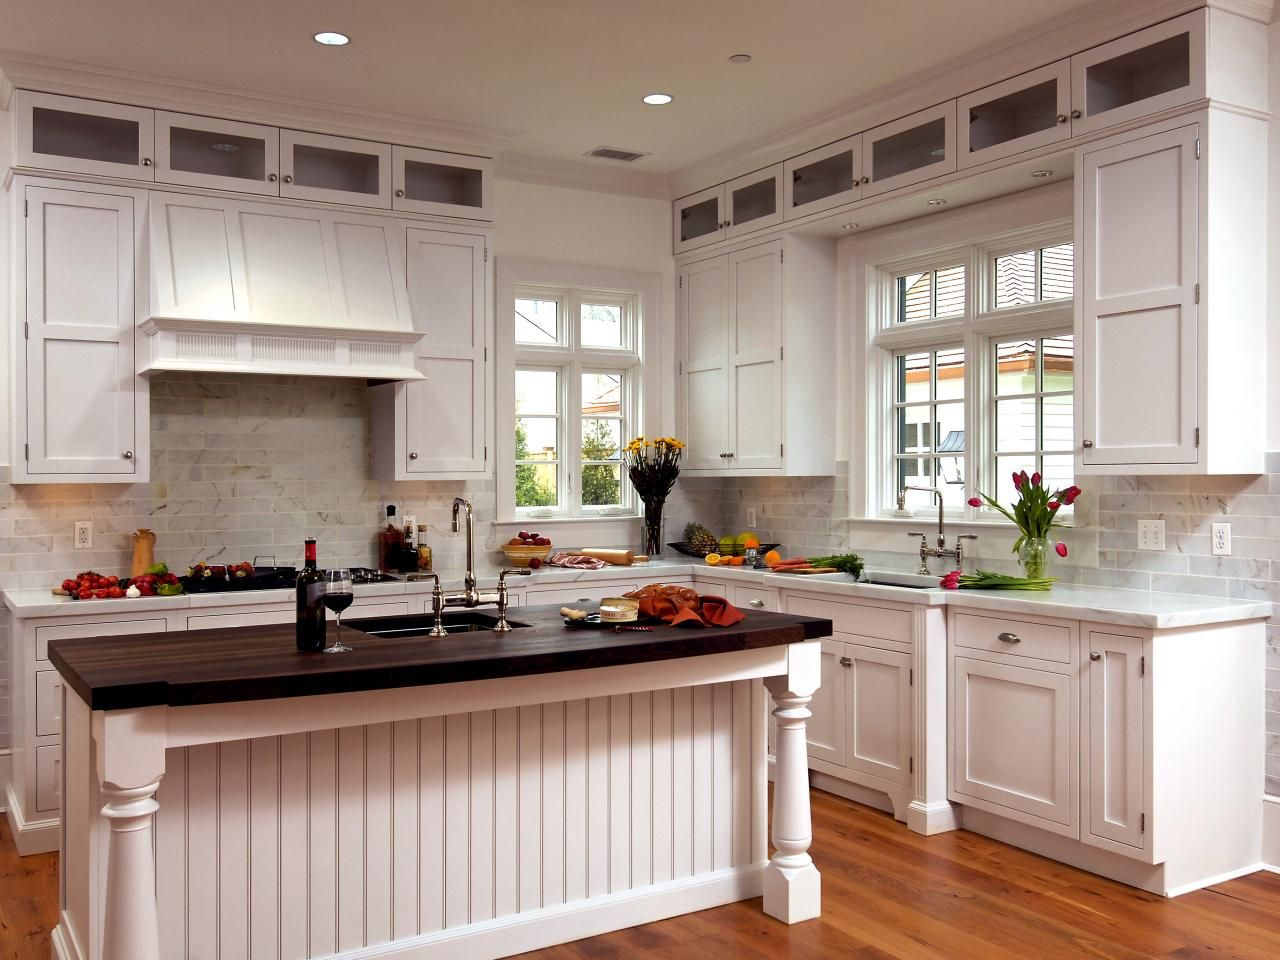 This Airy Kitchen Boasts White Cabinetry A White Range